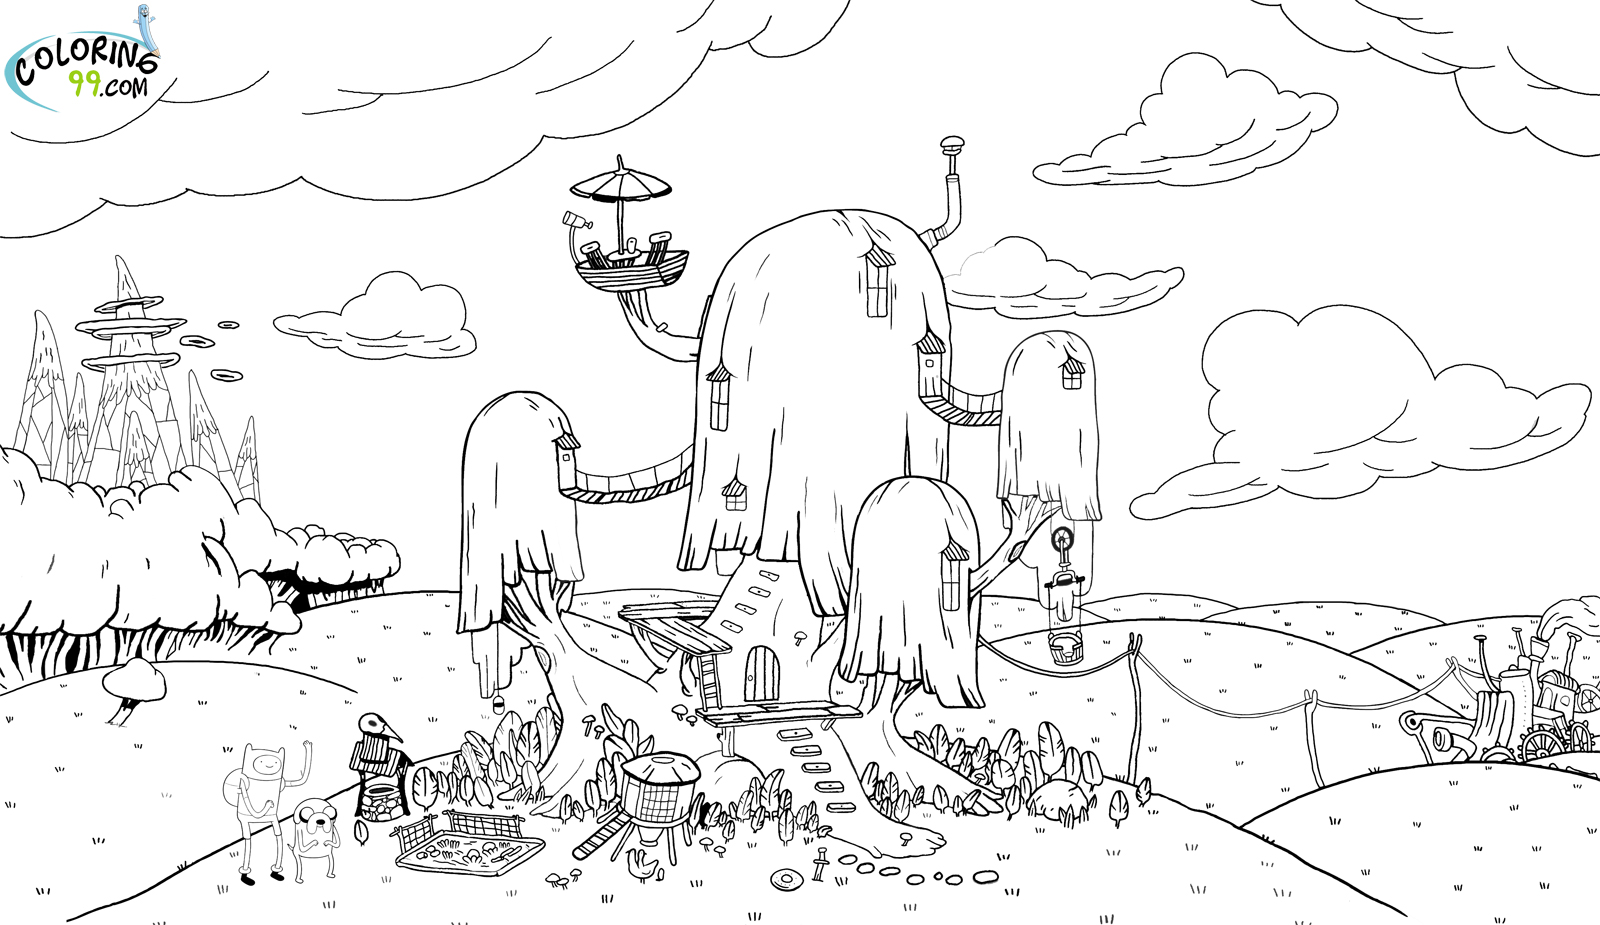 adventure time coloring pages adventure time coloring pages minister coloring adventure time coloring pages